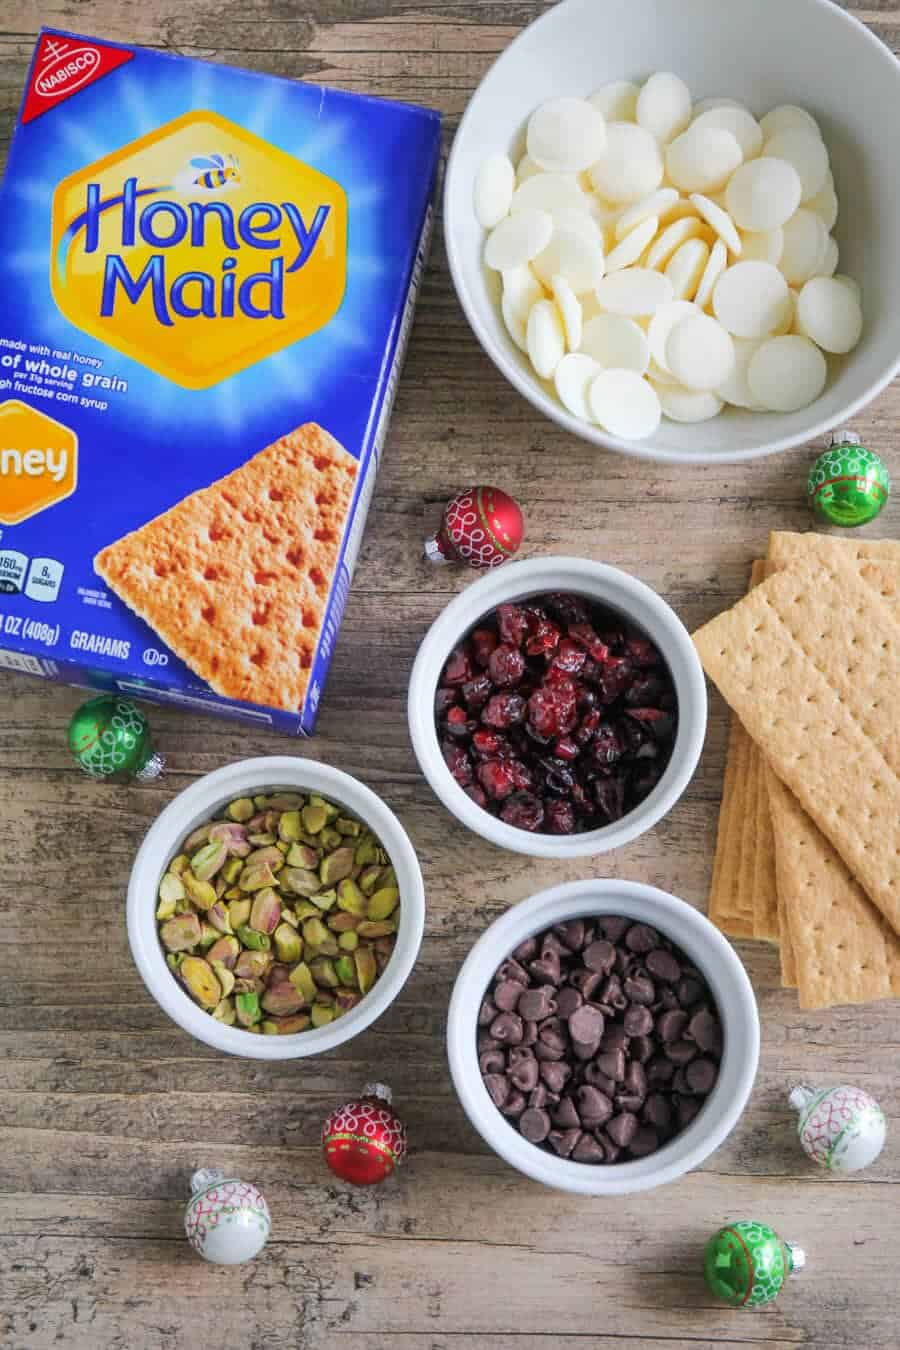 Graham Cracker Holiday Bark - this festive holiday bark is so easy to make using Honey Maid graham crackers! It's delicious and perfect for parties and holiday gift giving!